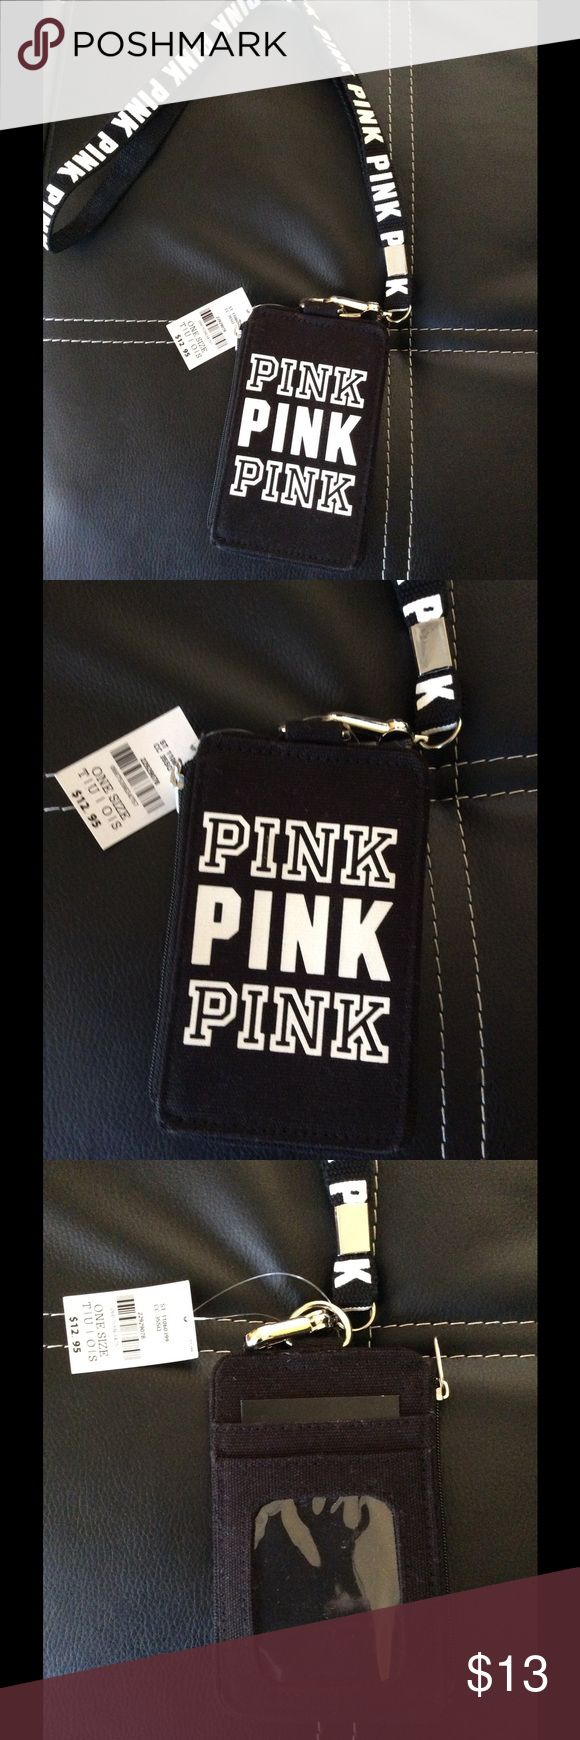 Victoria's Secret PINK Lanyard with ID Holder Victoria's Secret PINK Black Lanyard with ID Holder Victoria's Secret Accessories Key & Card Holders